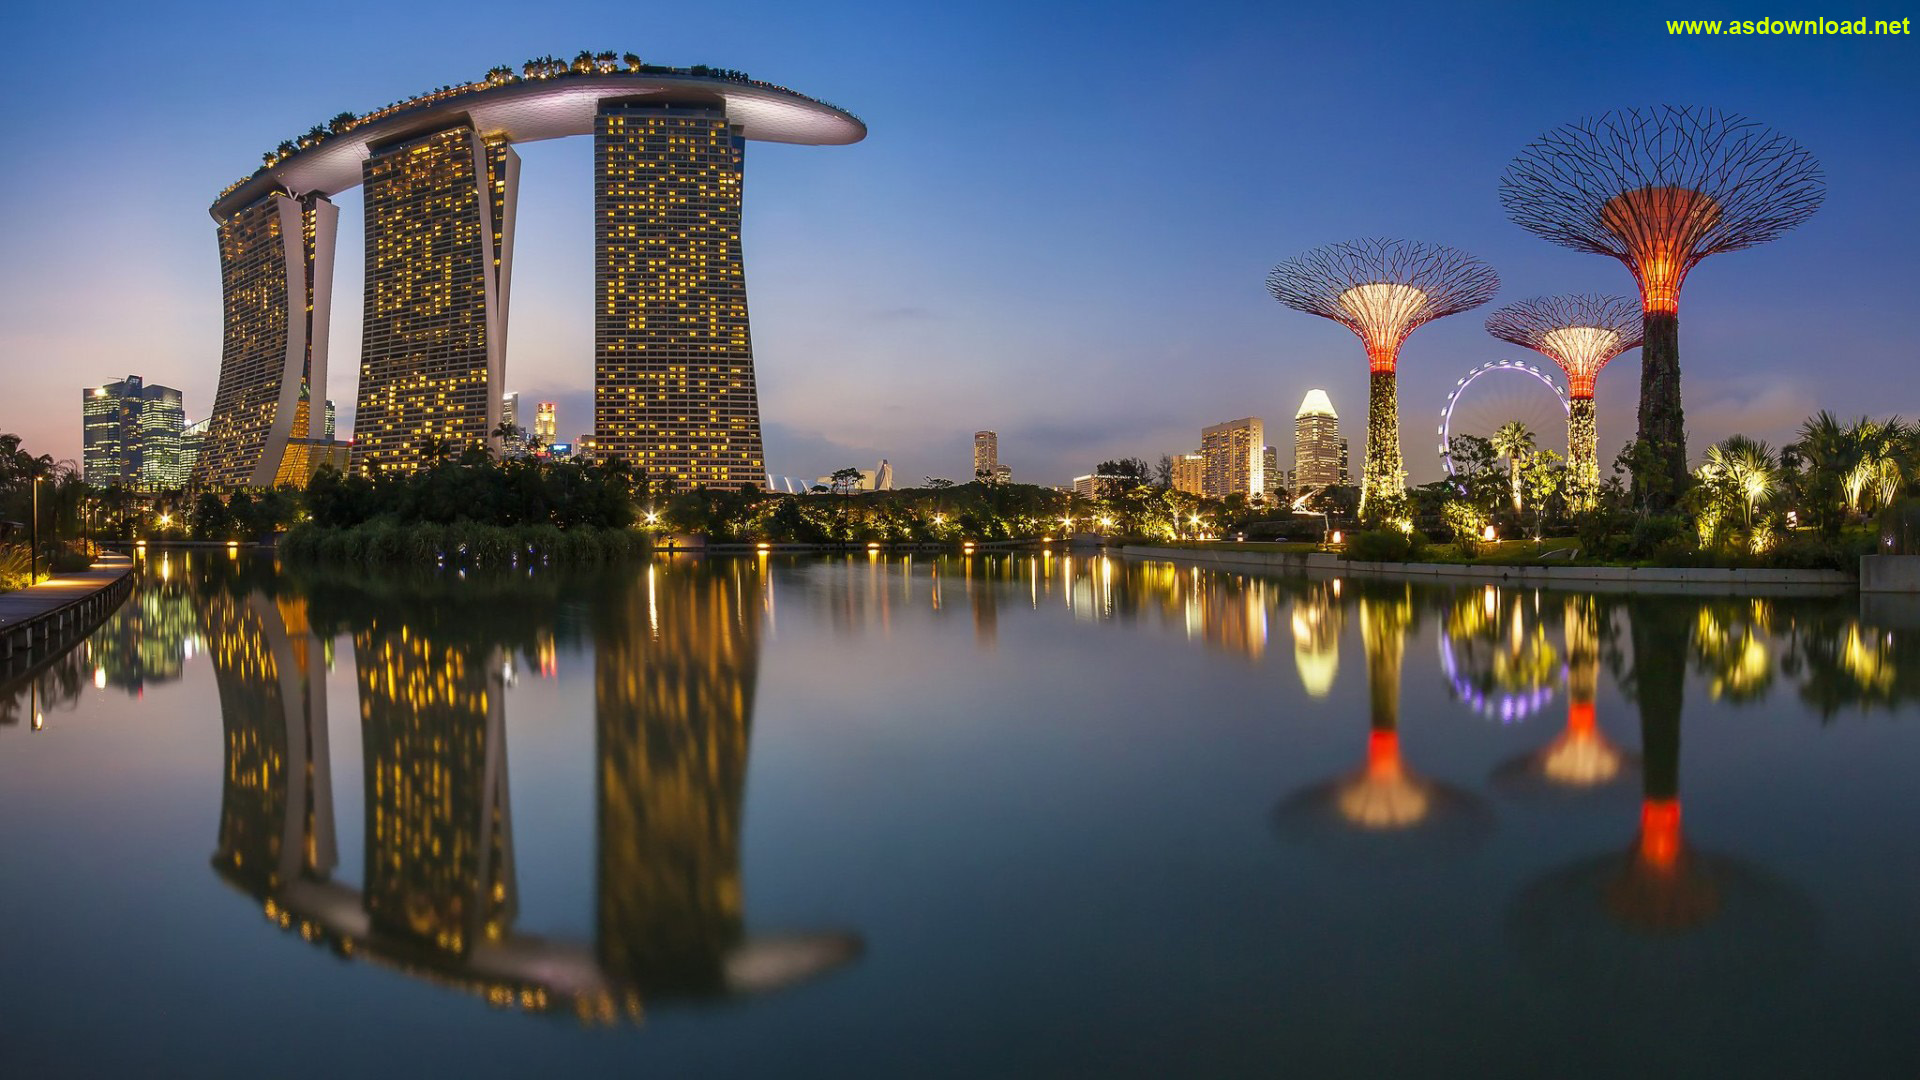 Singapore City Wallpapers